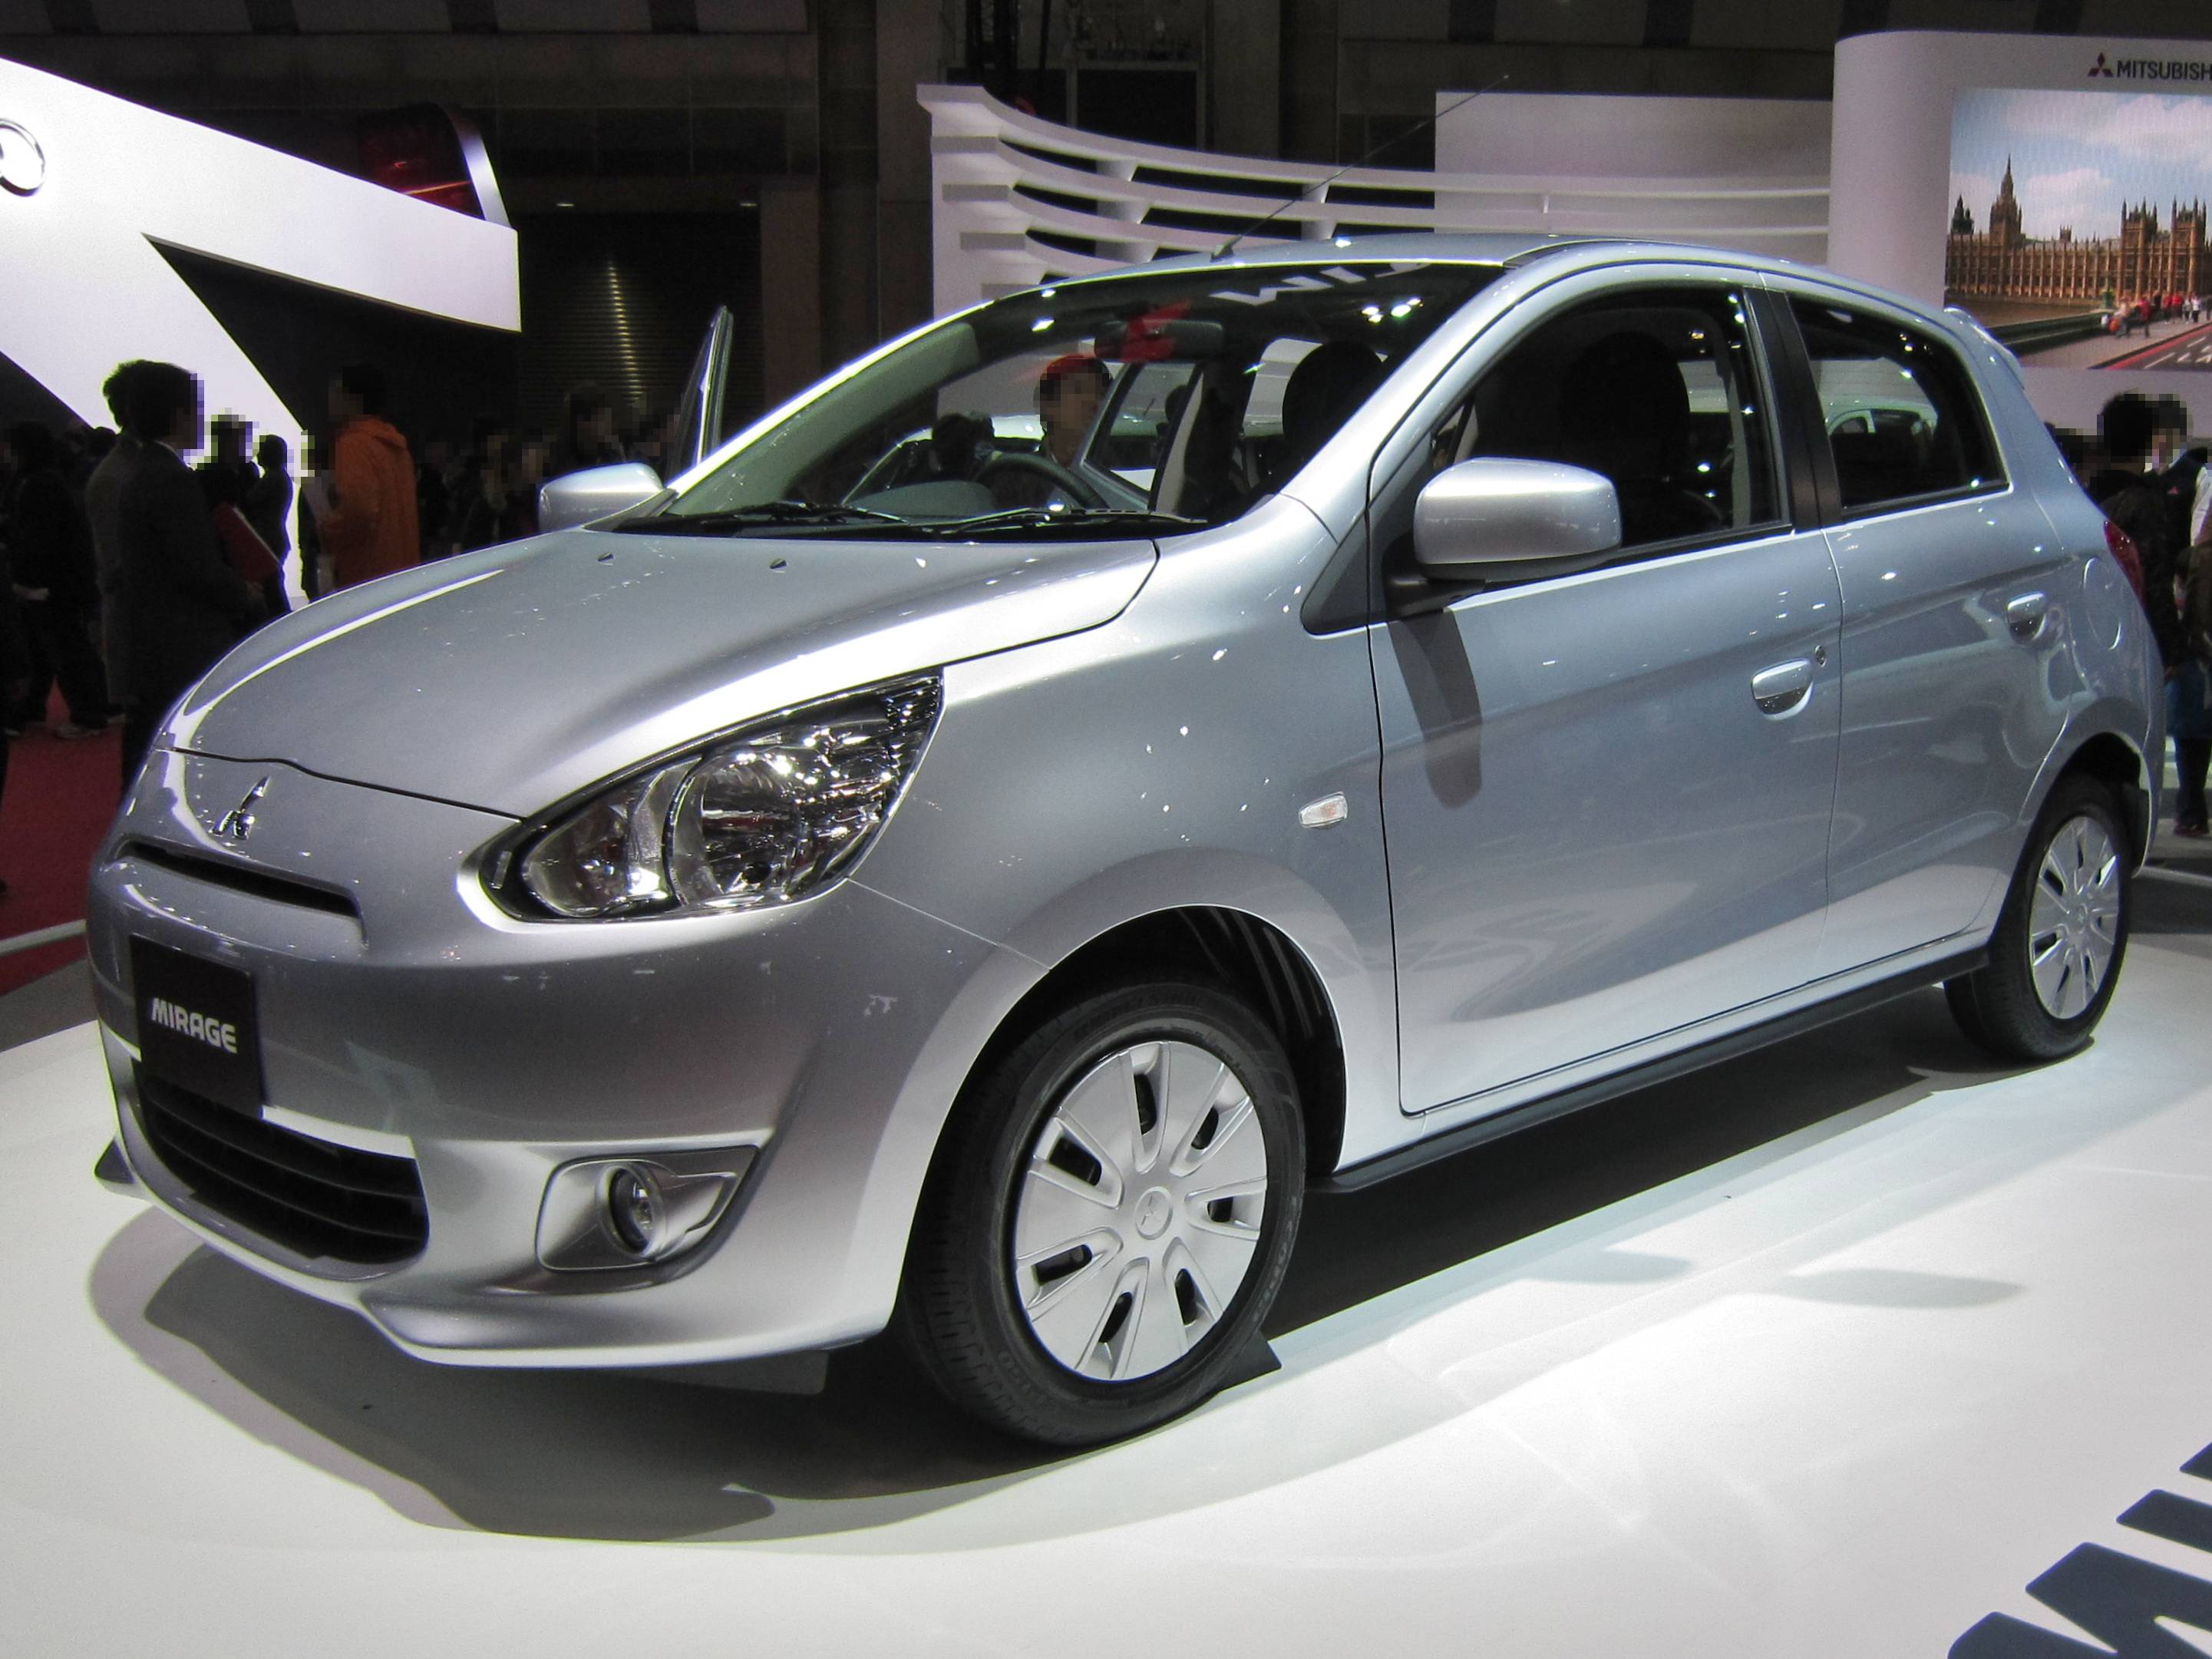 Mitsubishi Mirage 2011: Review, Amazing Pictures and Images – Look